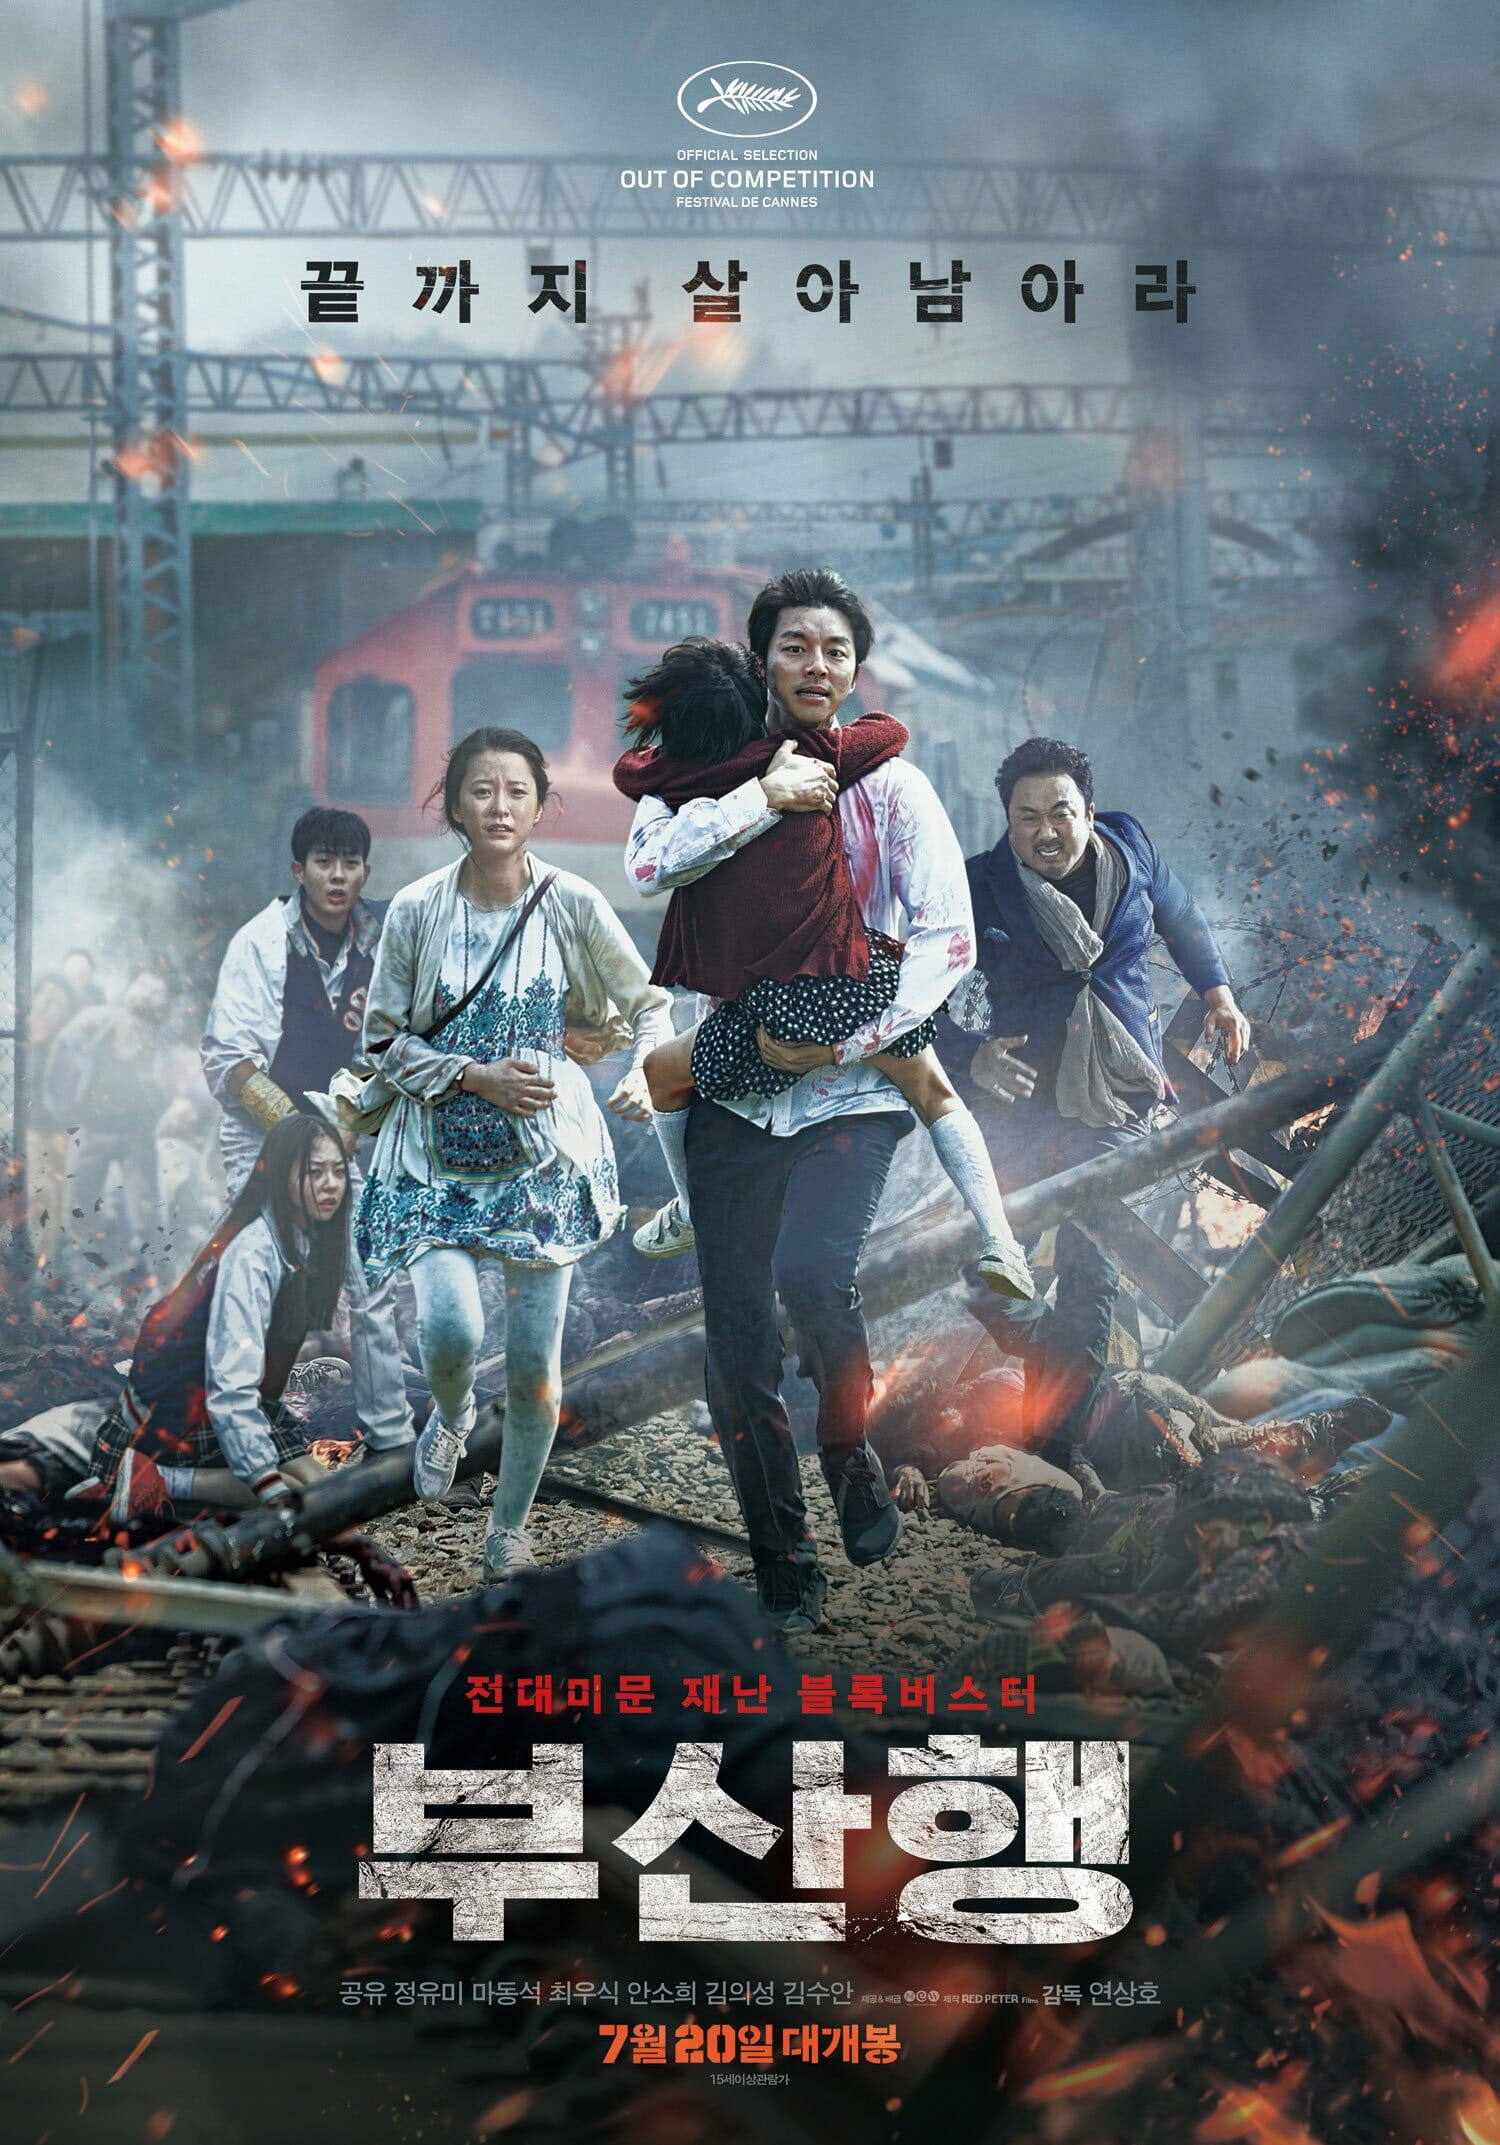 photo traintobusan_01